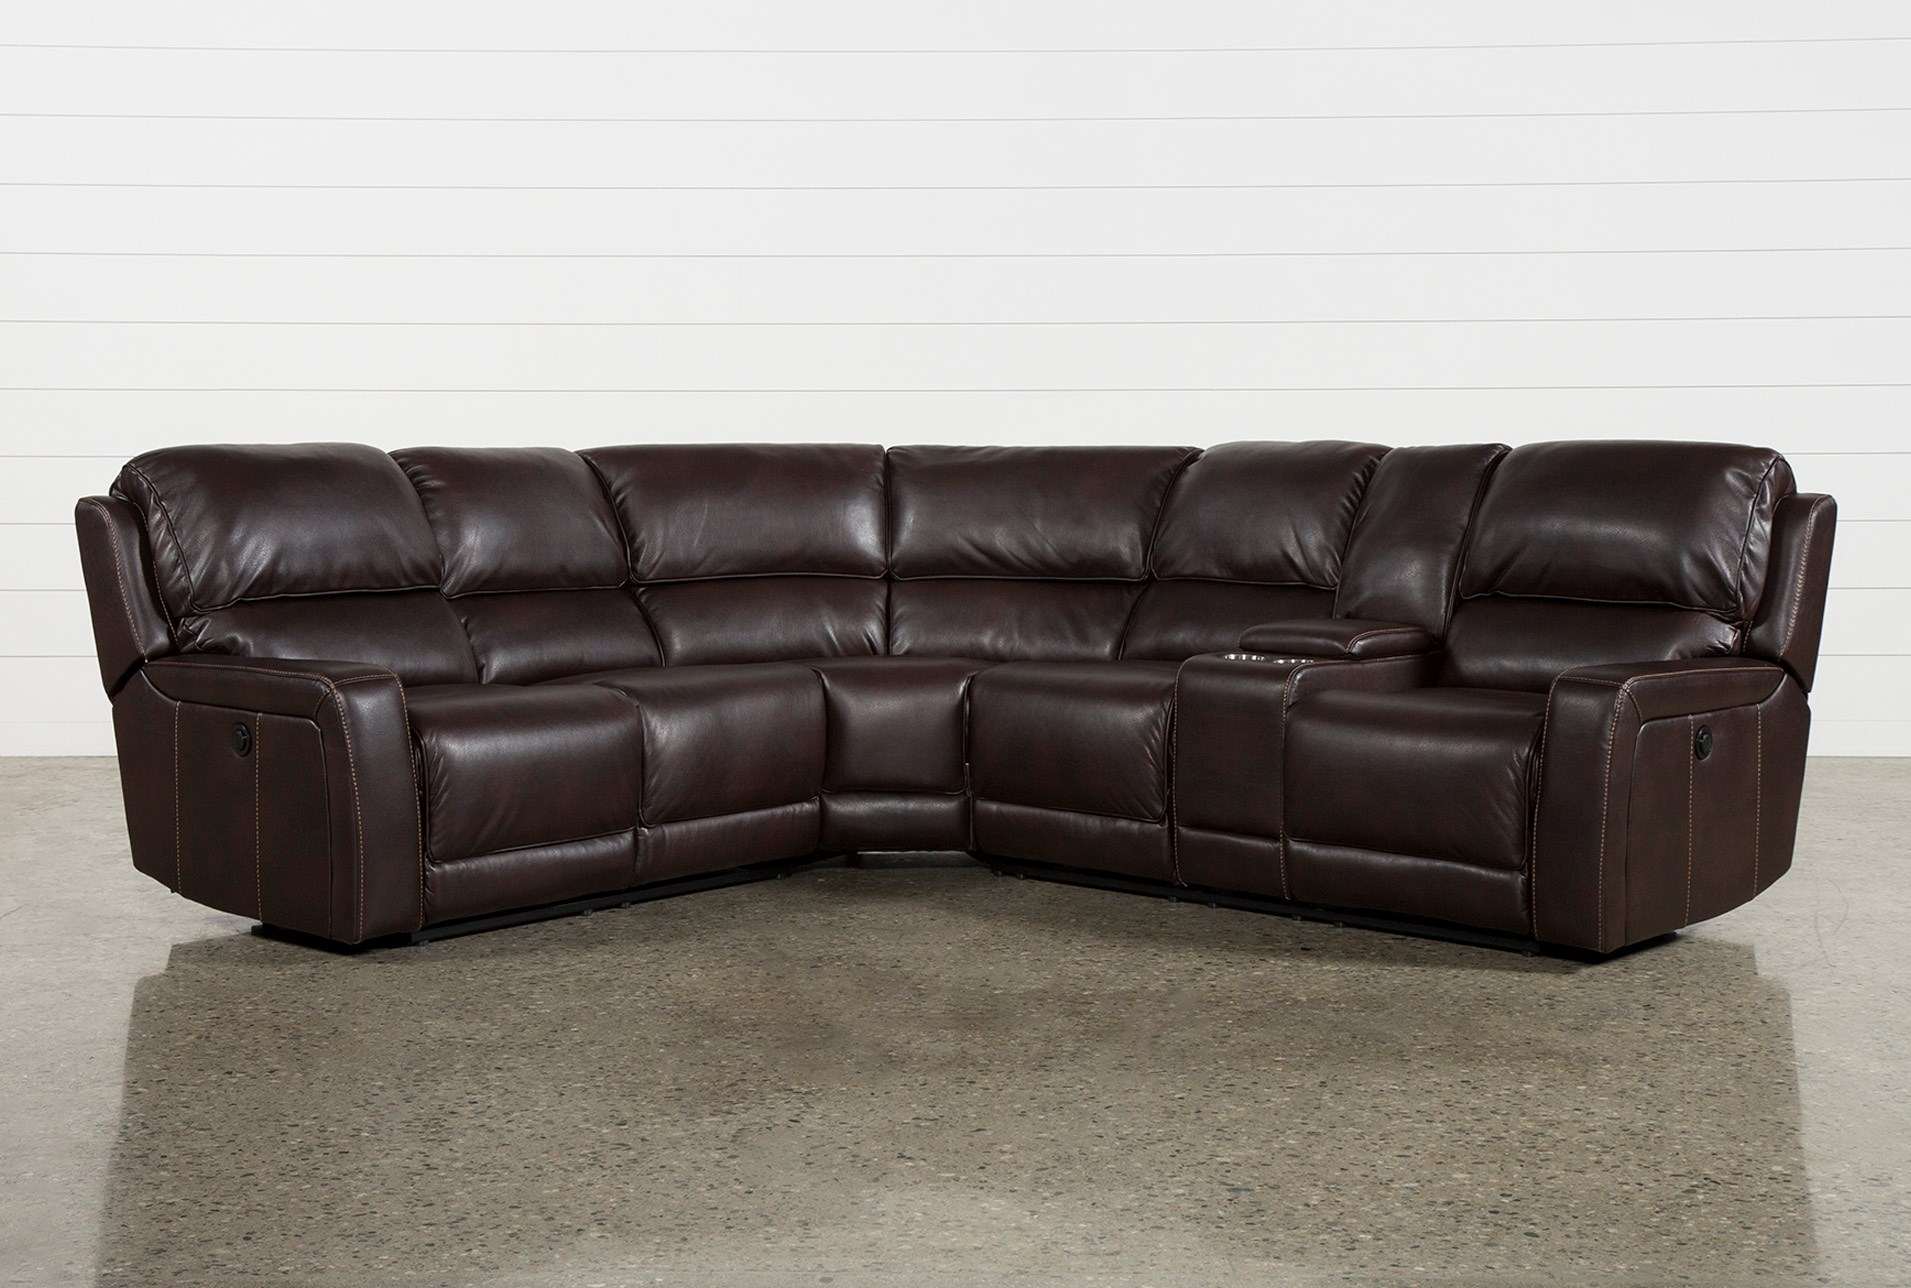 Sectional Loveseat - Tidex within Turdur 3 Piece Sectionals With Raf Loveseat (Image 25 of 30)